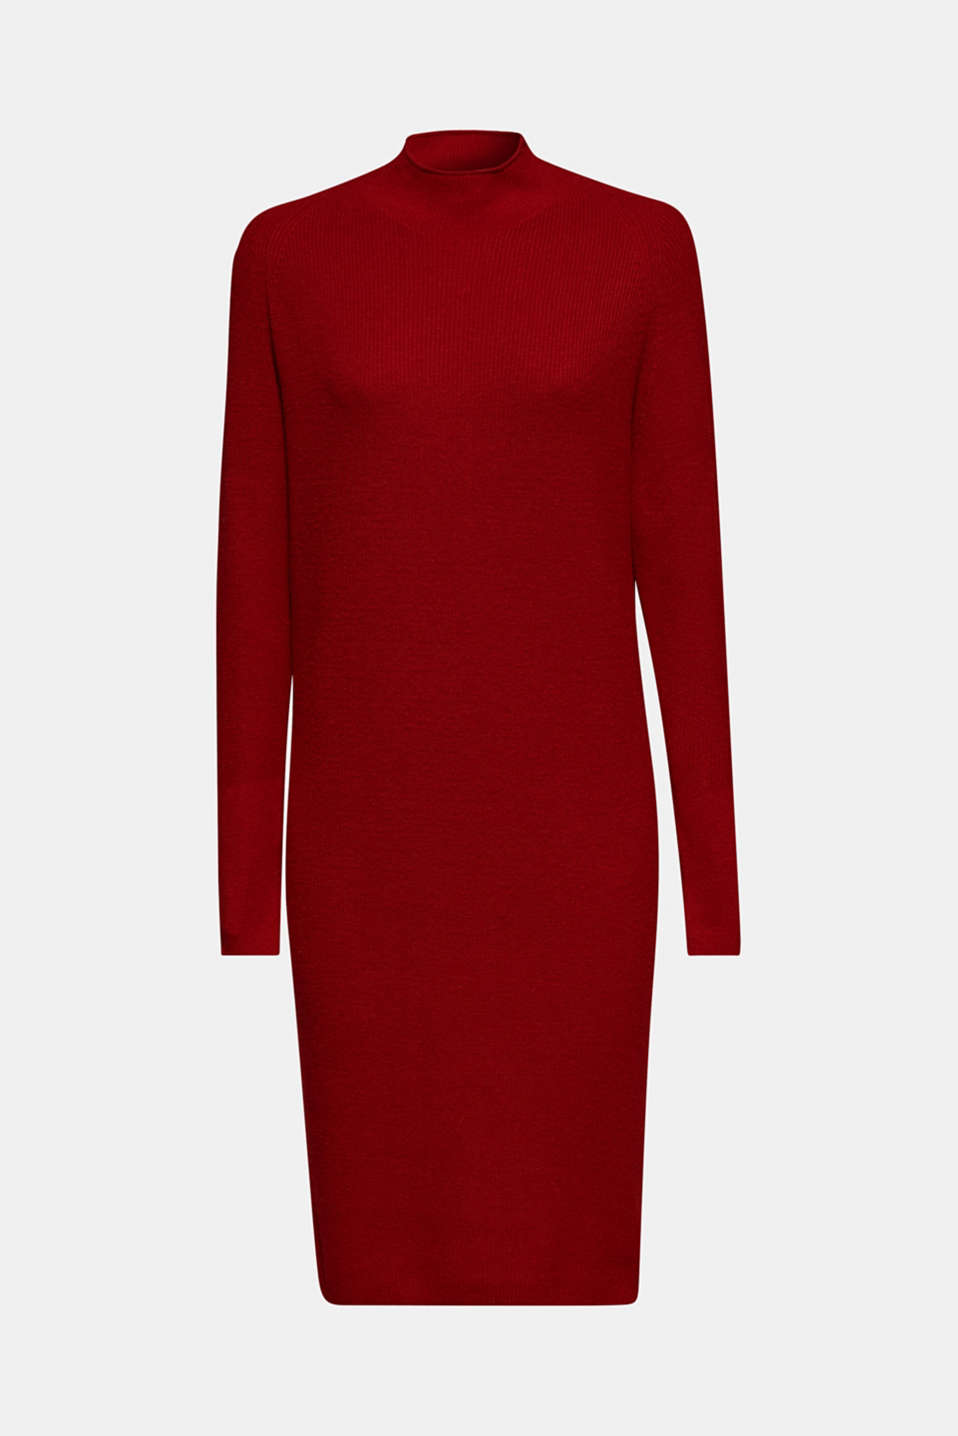 Dresses flat knitted, DARK RED, detail image number 7